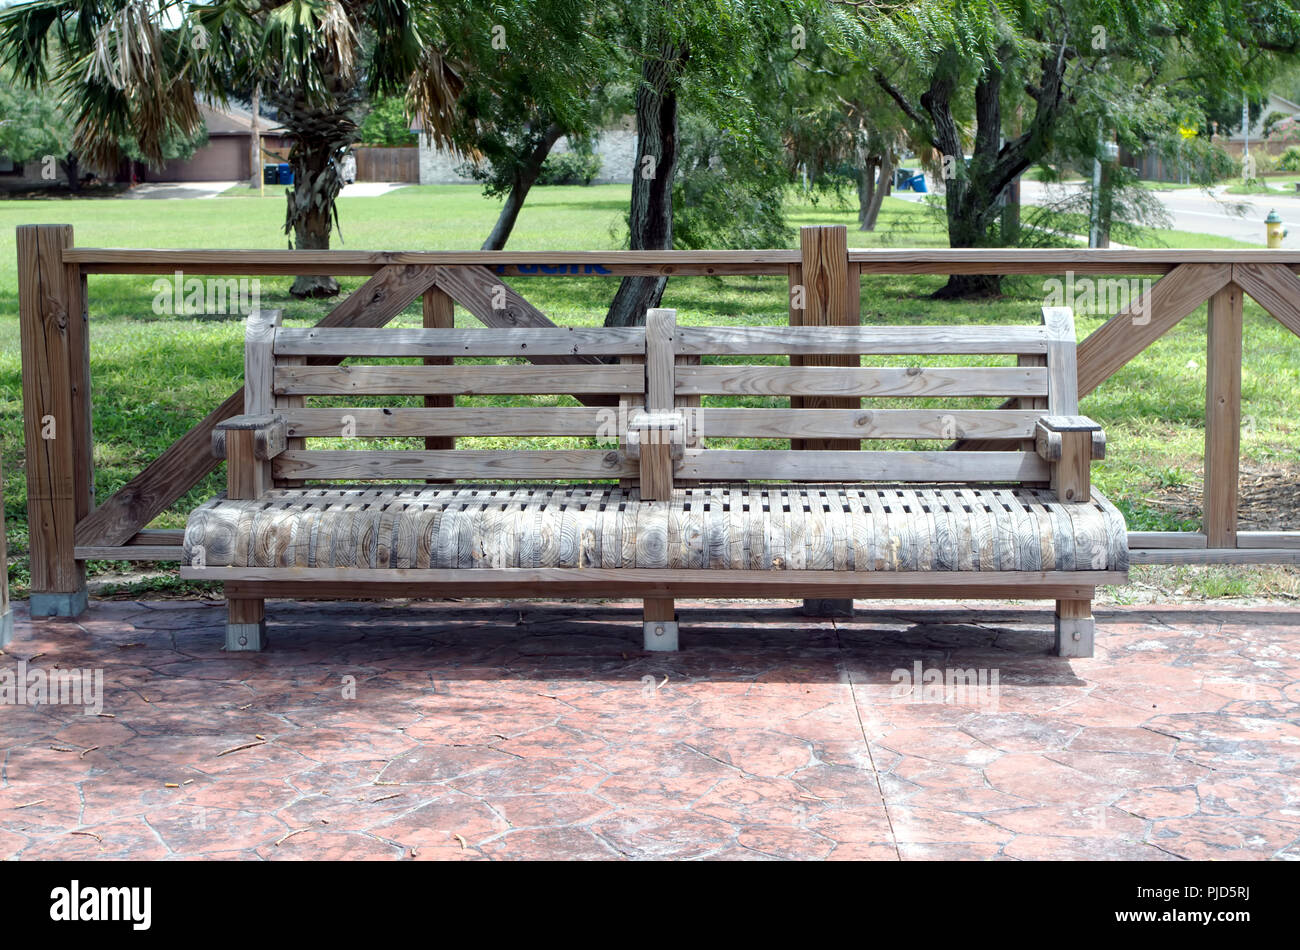 A sturdy wooden bench of unusual style is permanently affixed to stamped concrete (view 2.) Schanen hike and bike trail Corpus Christi, Texas USA. - Stock Image